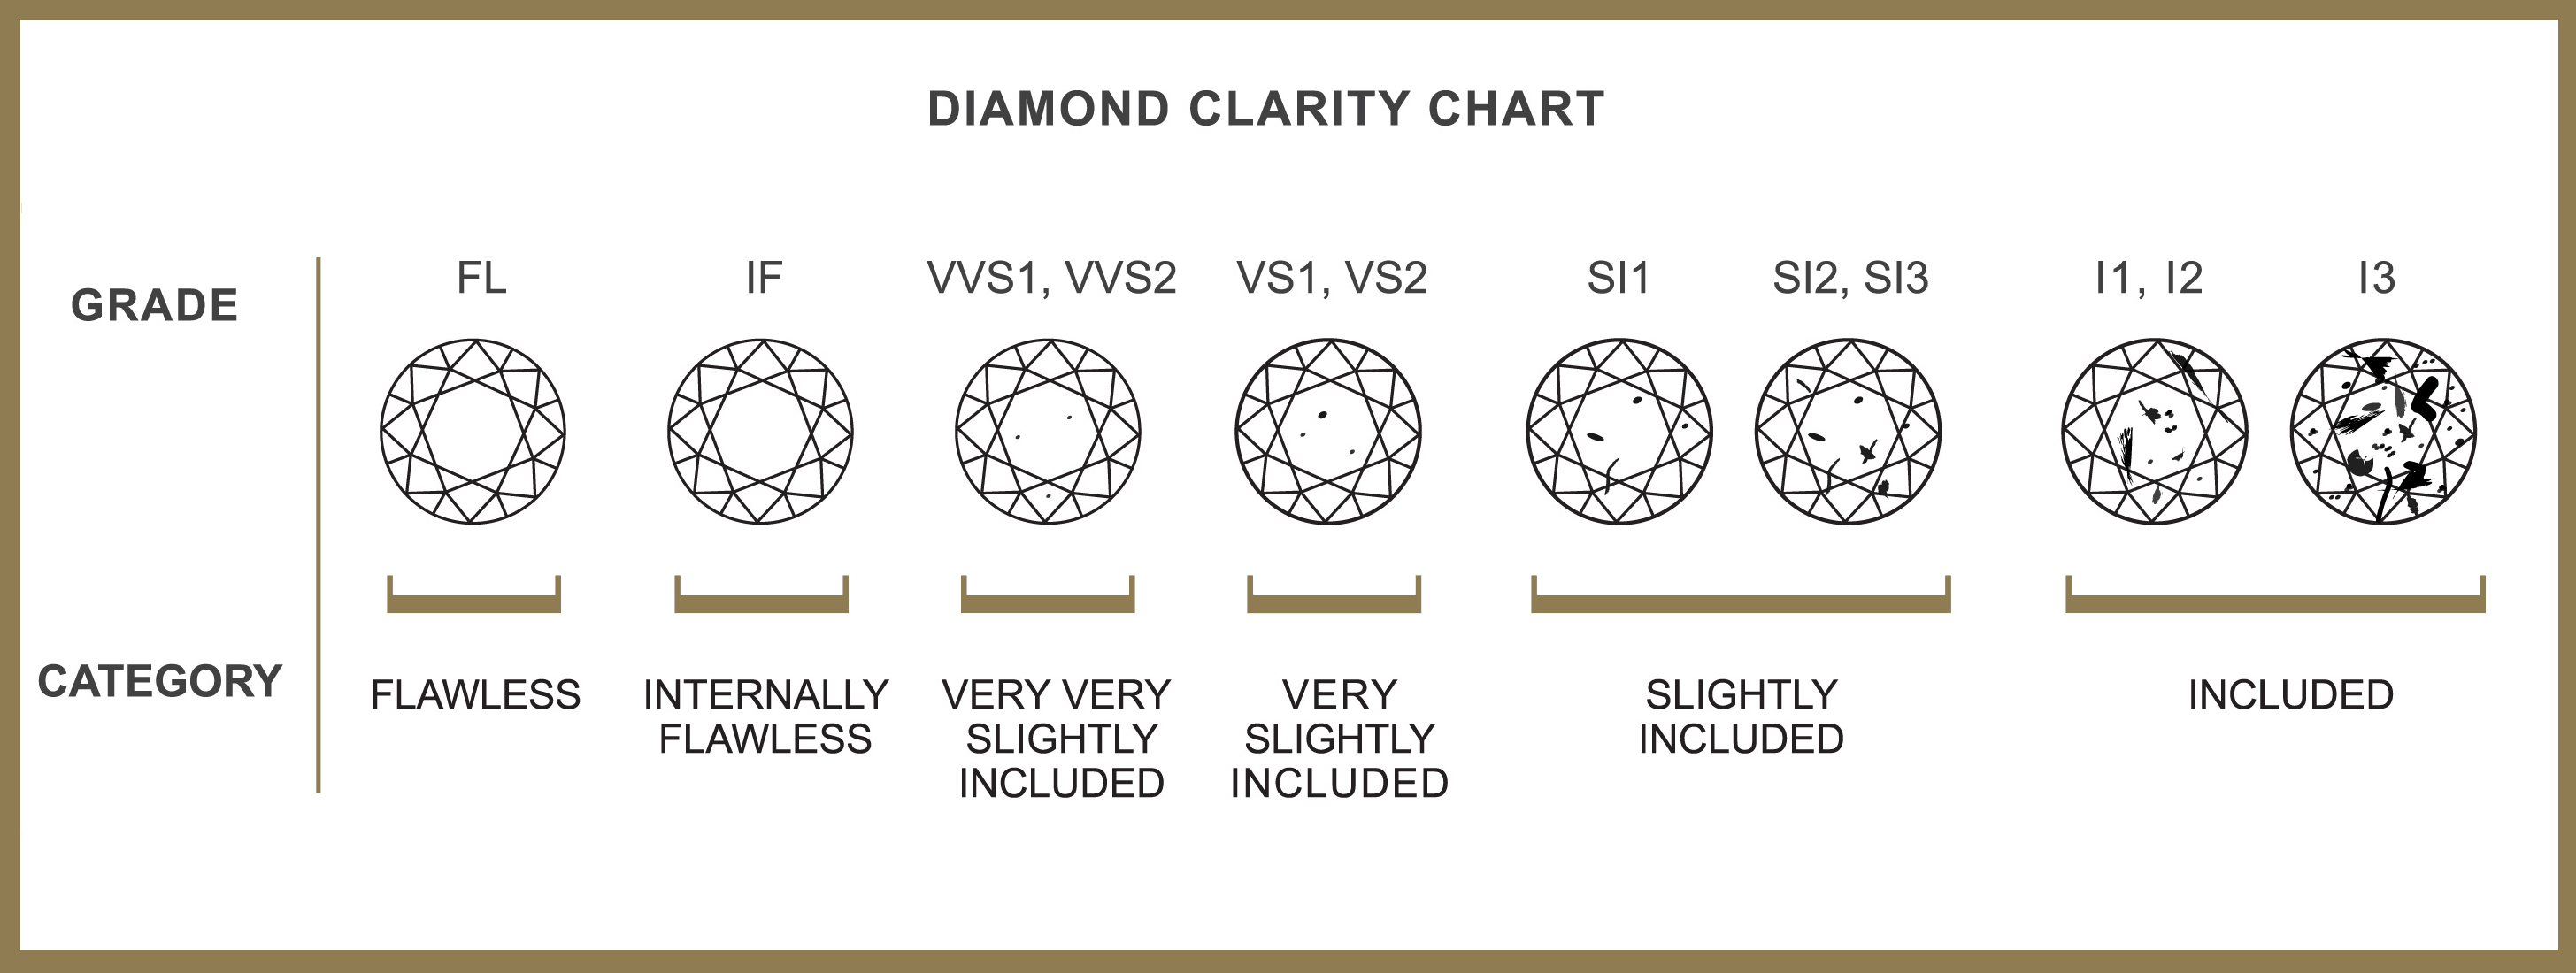 color clarity chart - 28 images - color clarity size chart ...